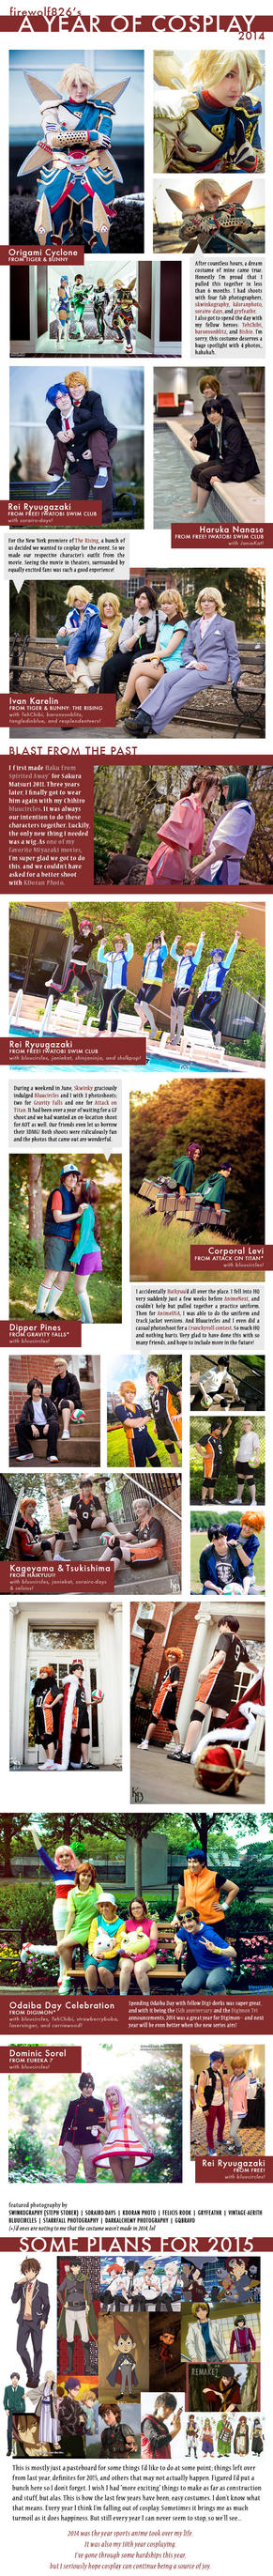 A Year of Cosplay 2014 by firewolf826